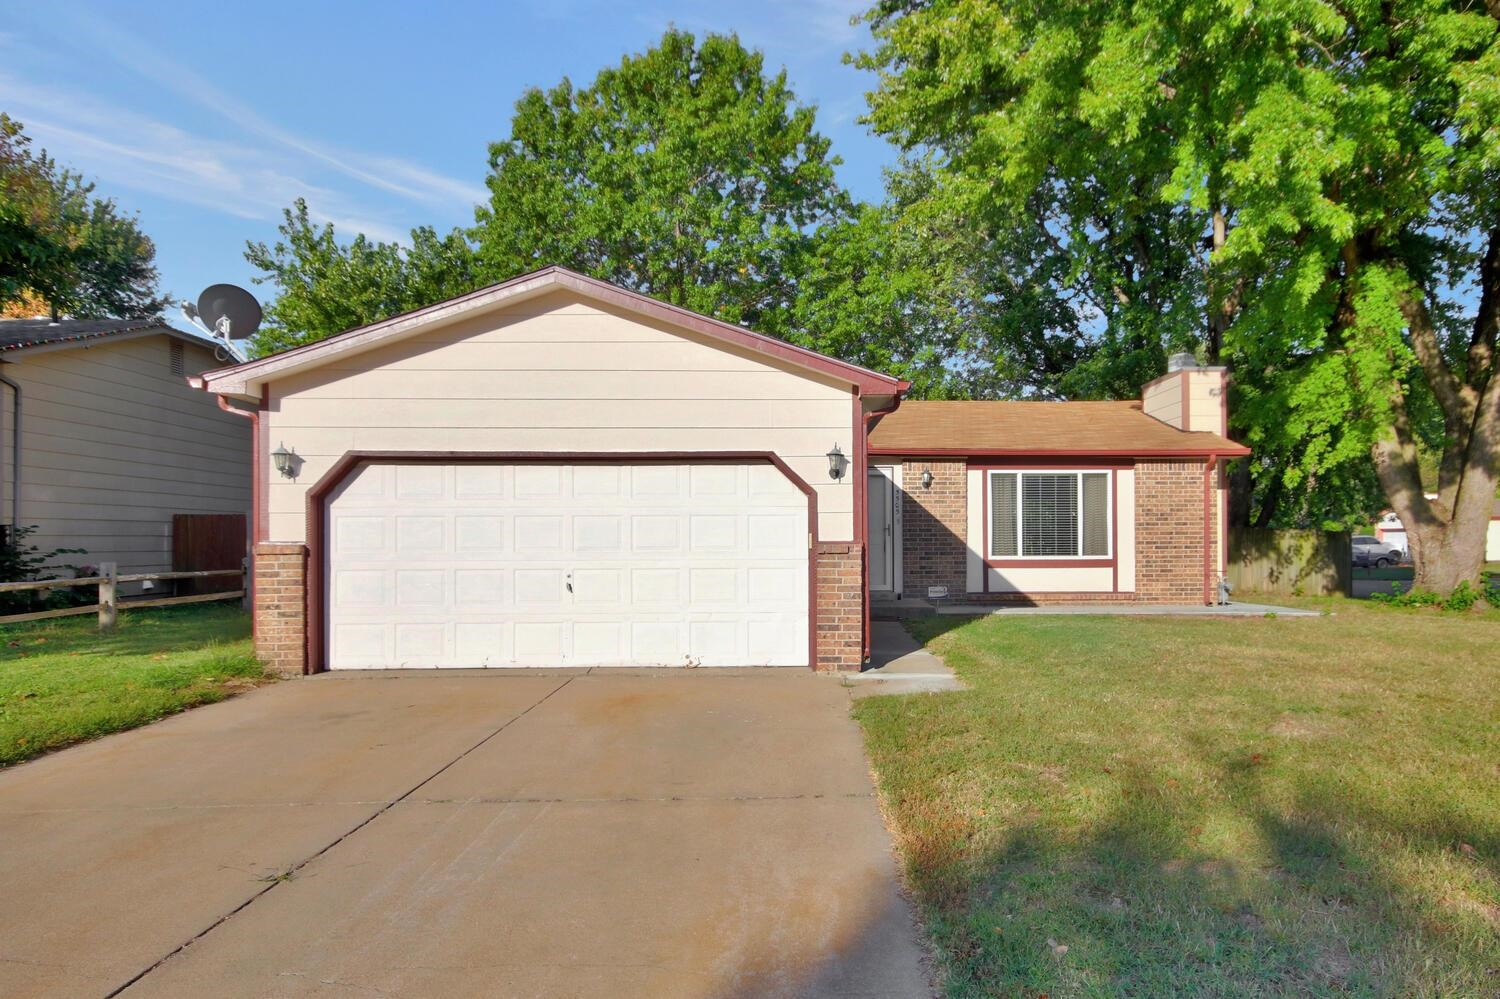 Well maintained house sitting on a spacious corner lot, quiet neighborhood. Move in ready condition, open floor plan, finished basement, fenced yard, new concrete walkway, two car garage, lots of natural light, nice curb appeal, large living spaces in basement. Easy to show, must see to appreciate.